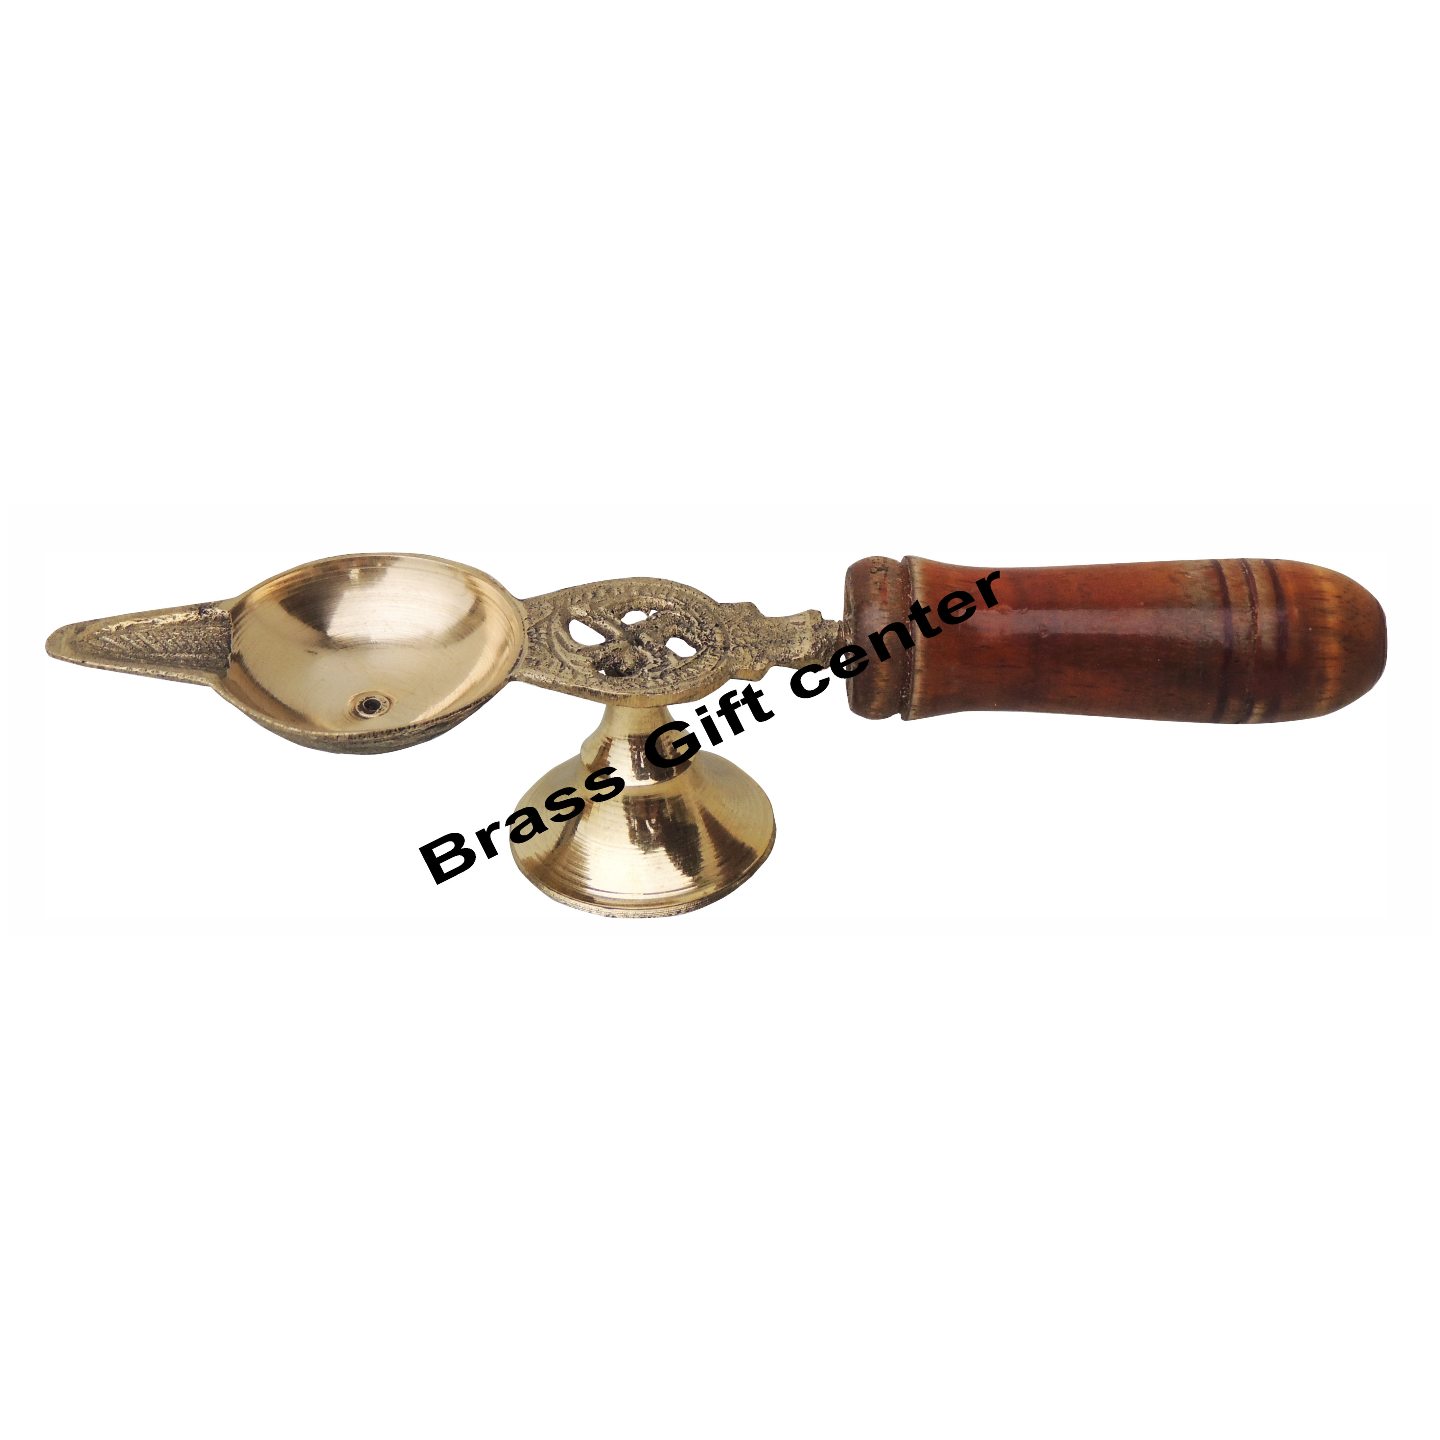 Brass Deepak With Wooden Handle - 6.5 Inch (F363 B)